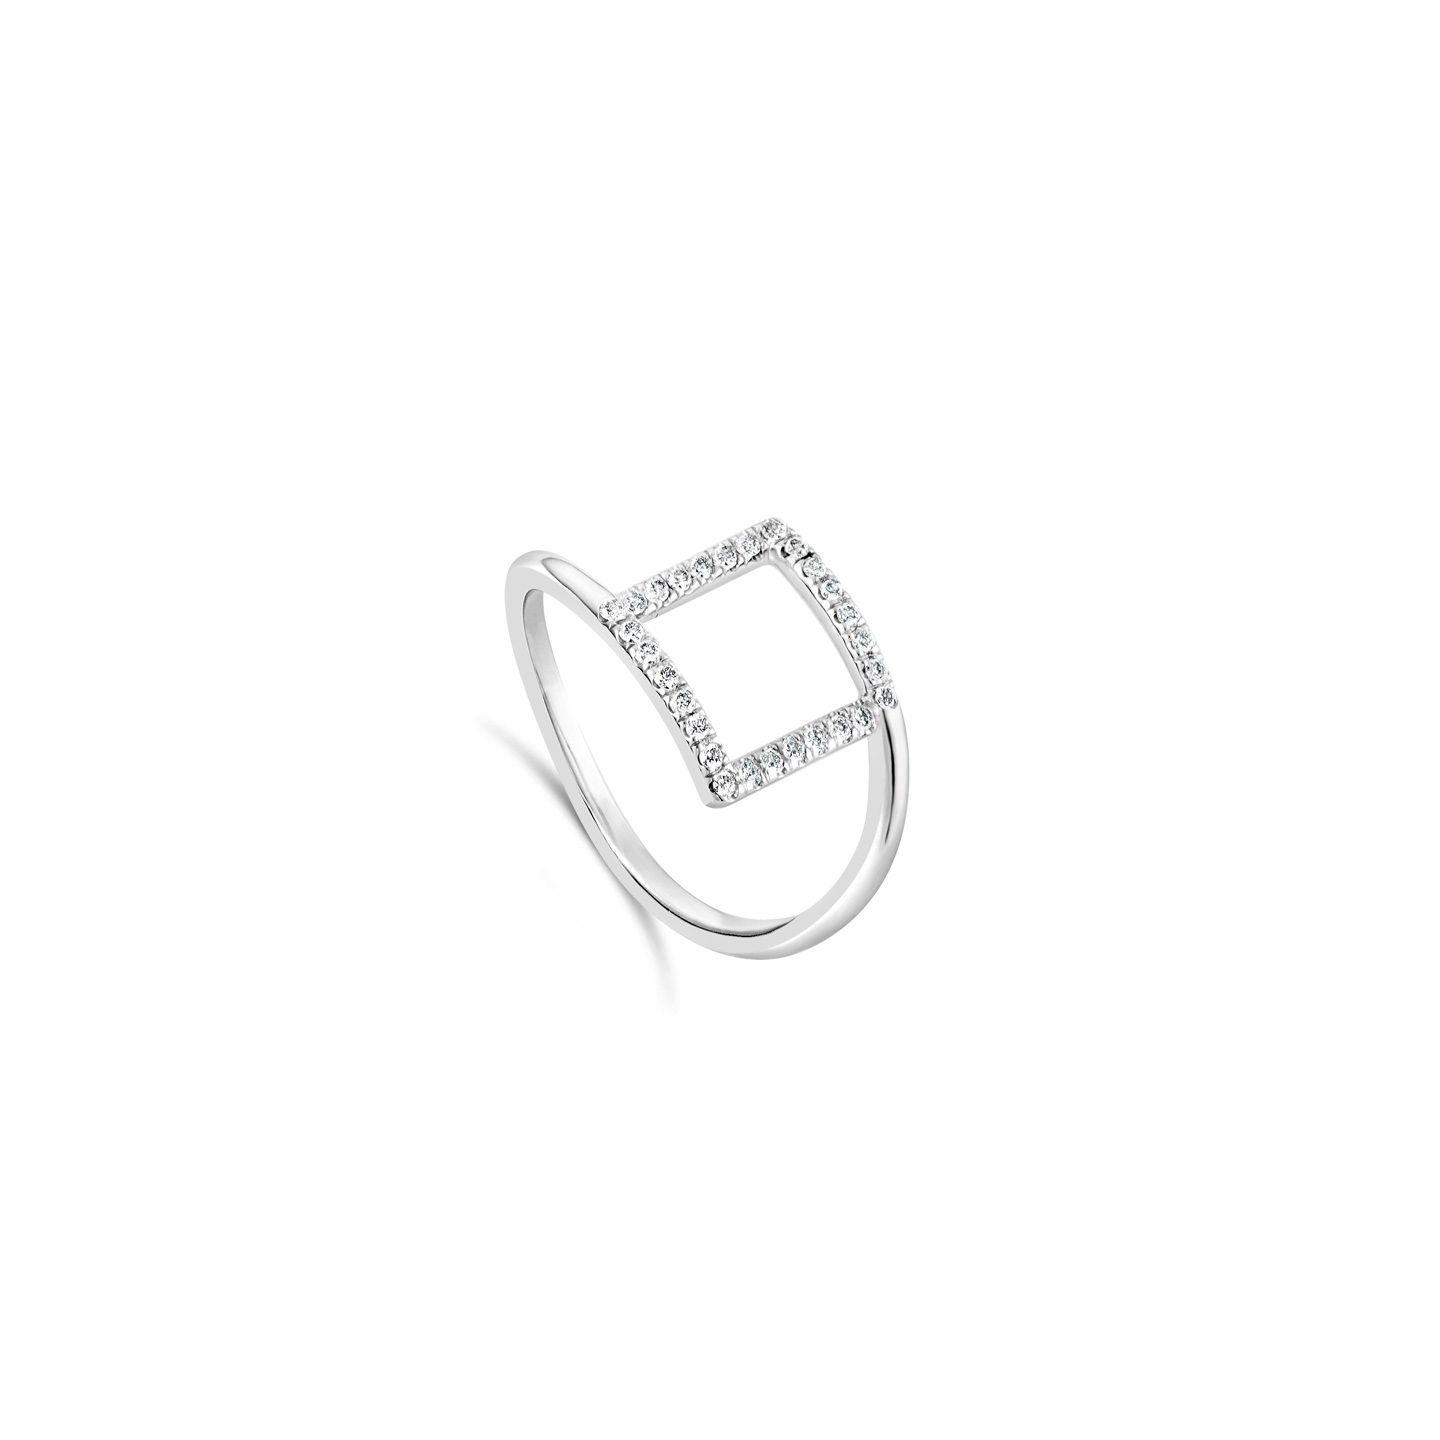 Bague Carre Or Blanc